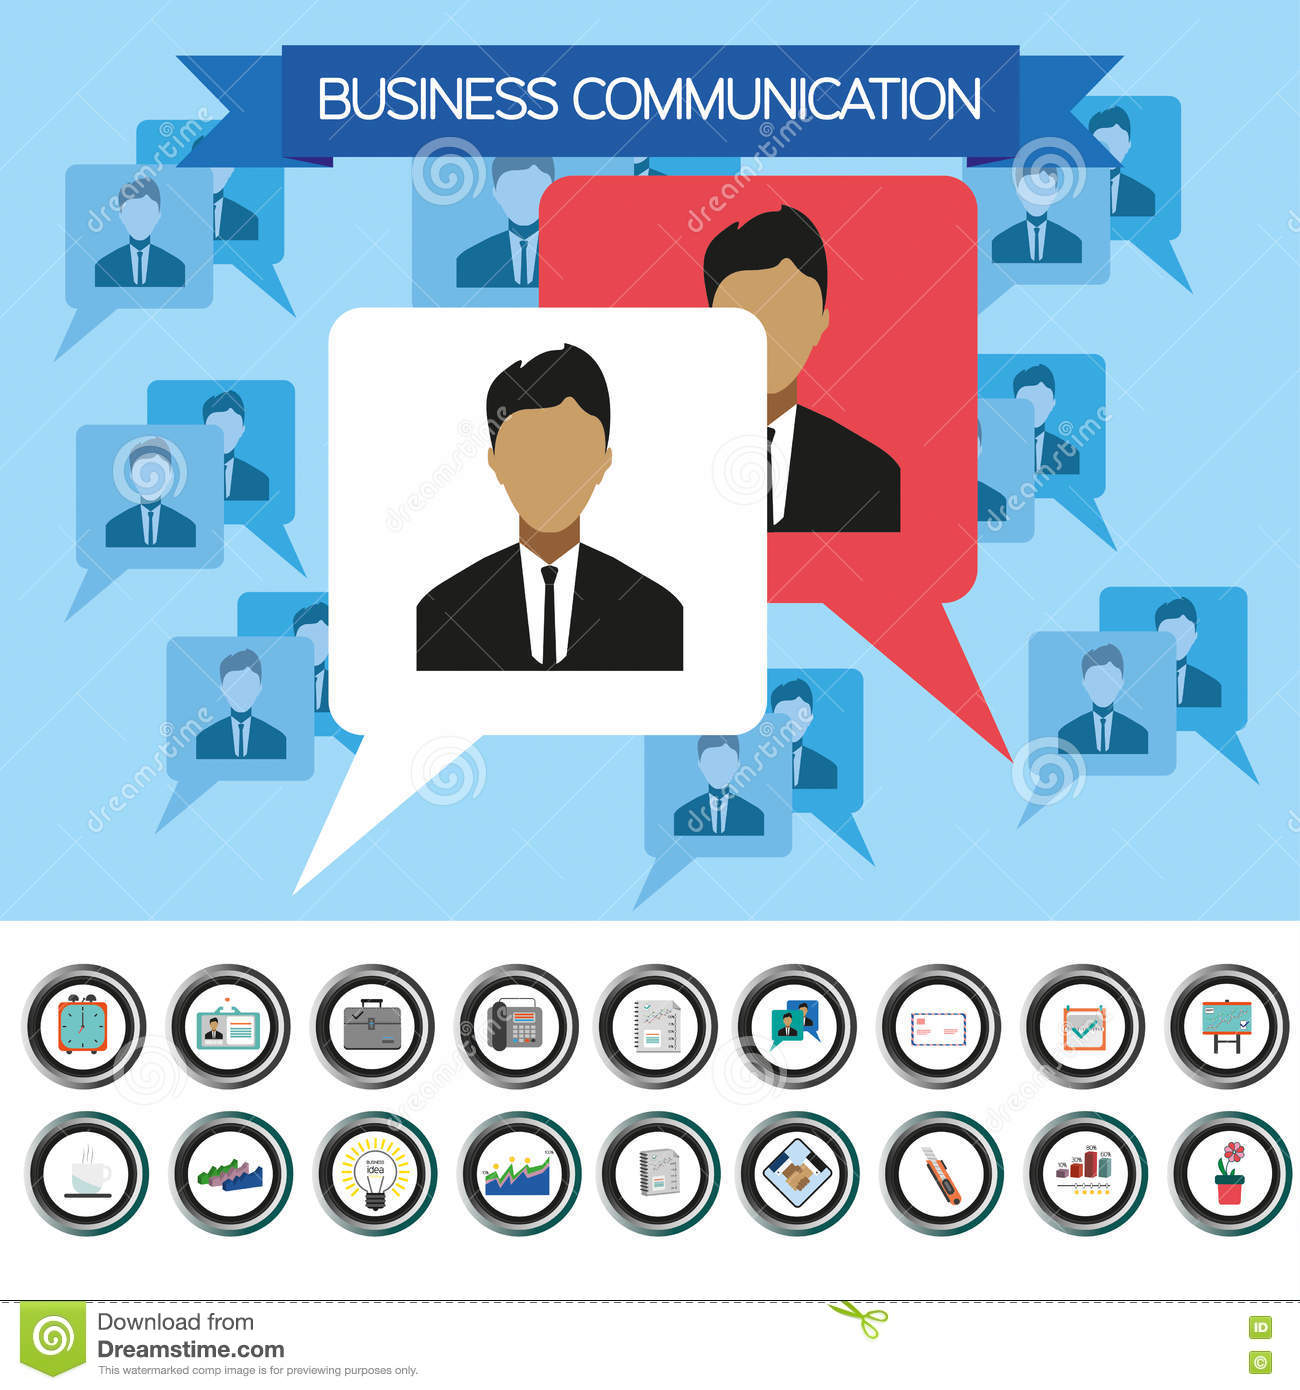 Room Designer Upload Photo Business Communication Infographic With Icons Persons And